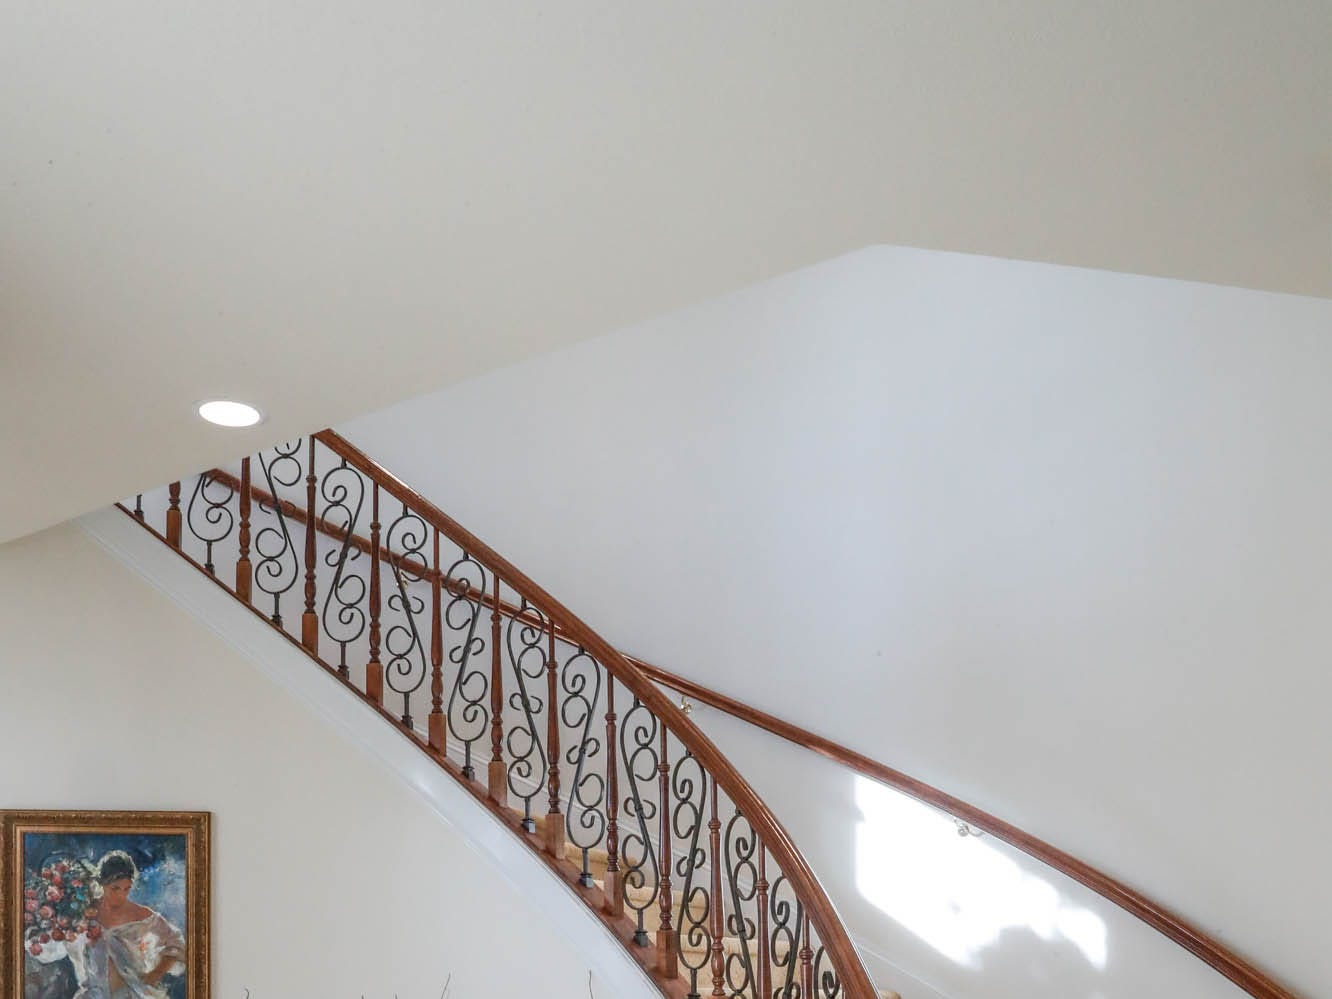 A winding grand staircase leads guests up to a, open game room at a Greenwood home up for sale at 1216 Stone Ridge Court, Greenwood, Ind. on Wednesday, Jan. 30, 2019. The home features 8,234 square feet, four bedrooms, two master suits, a 10 car garage, and exercise room.